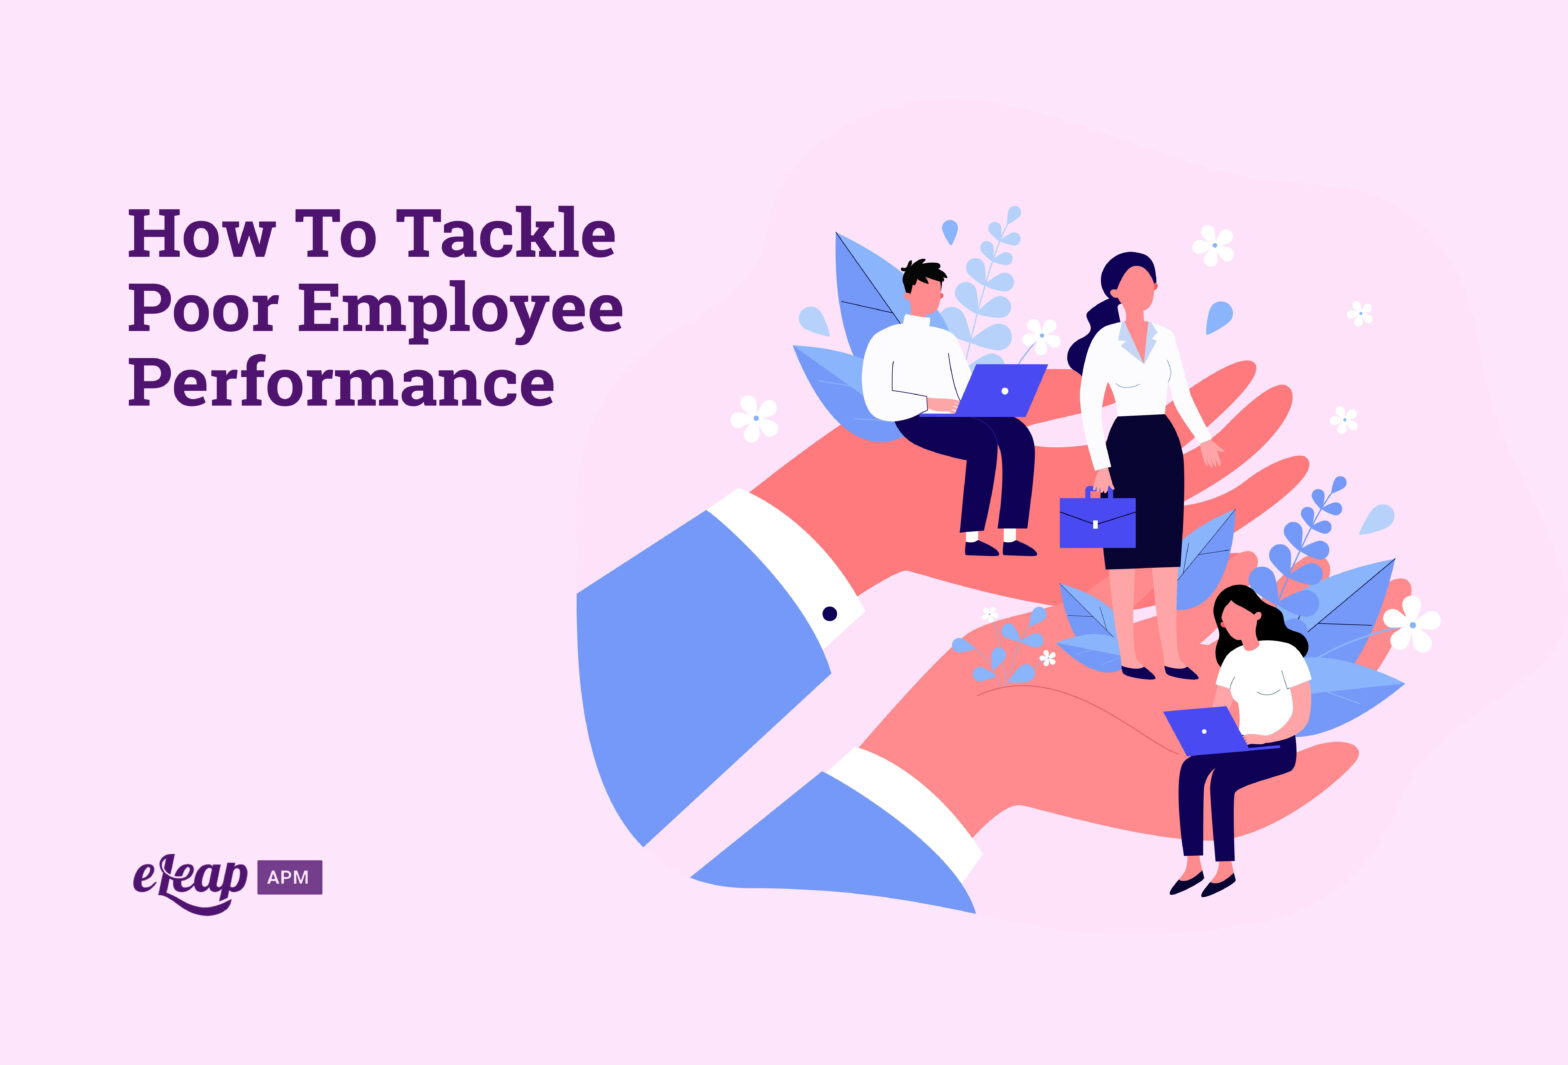 How To Tackle Poor Employee Performance